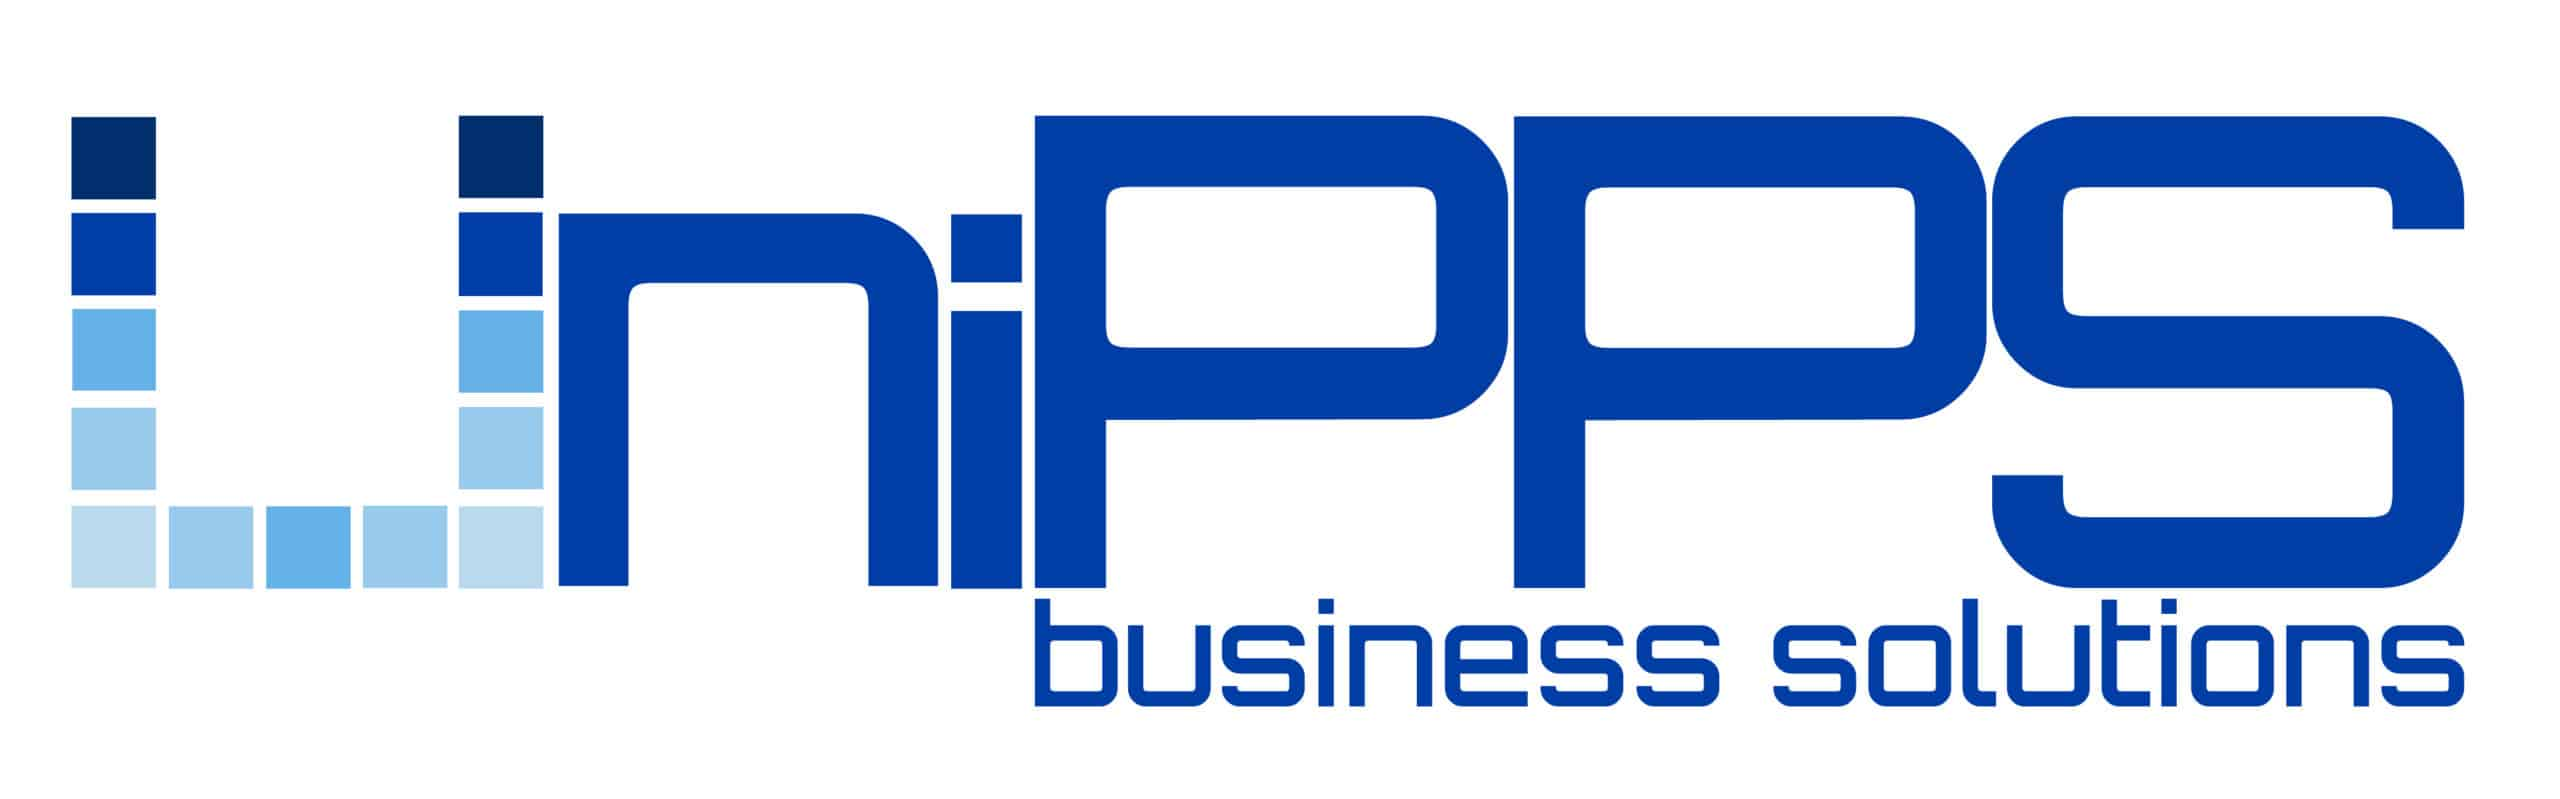 UniPPS GmbH business solutions